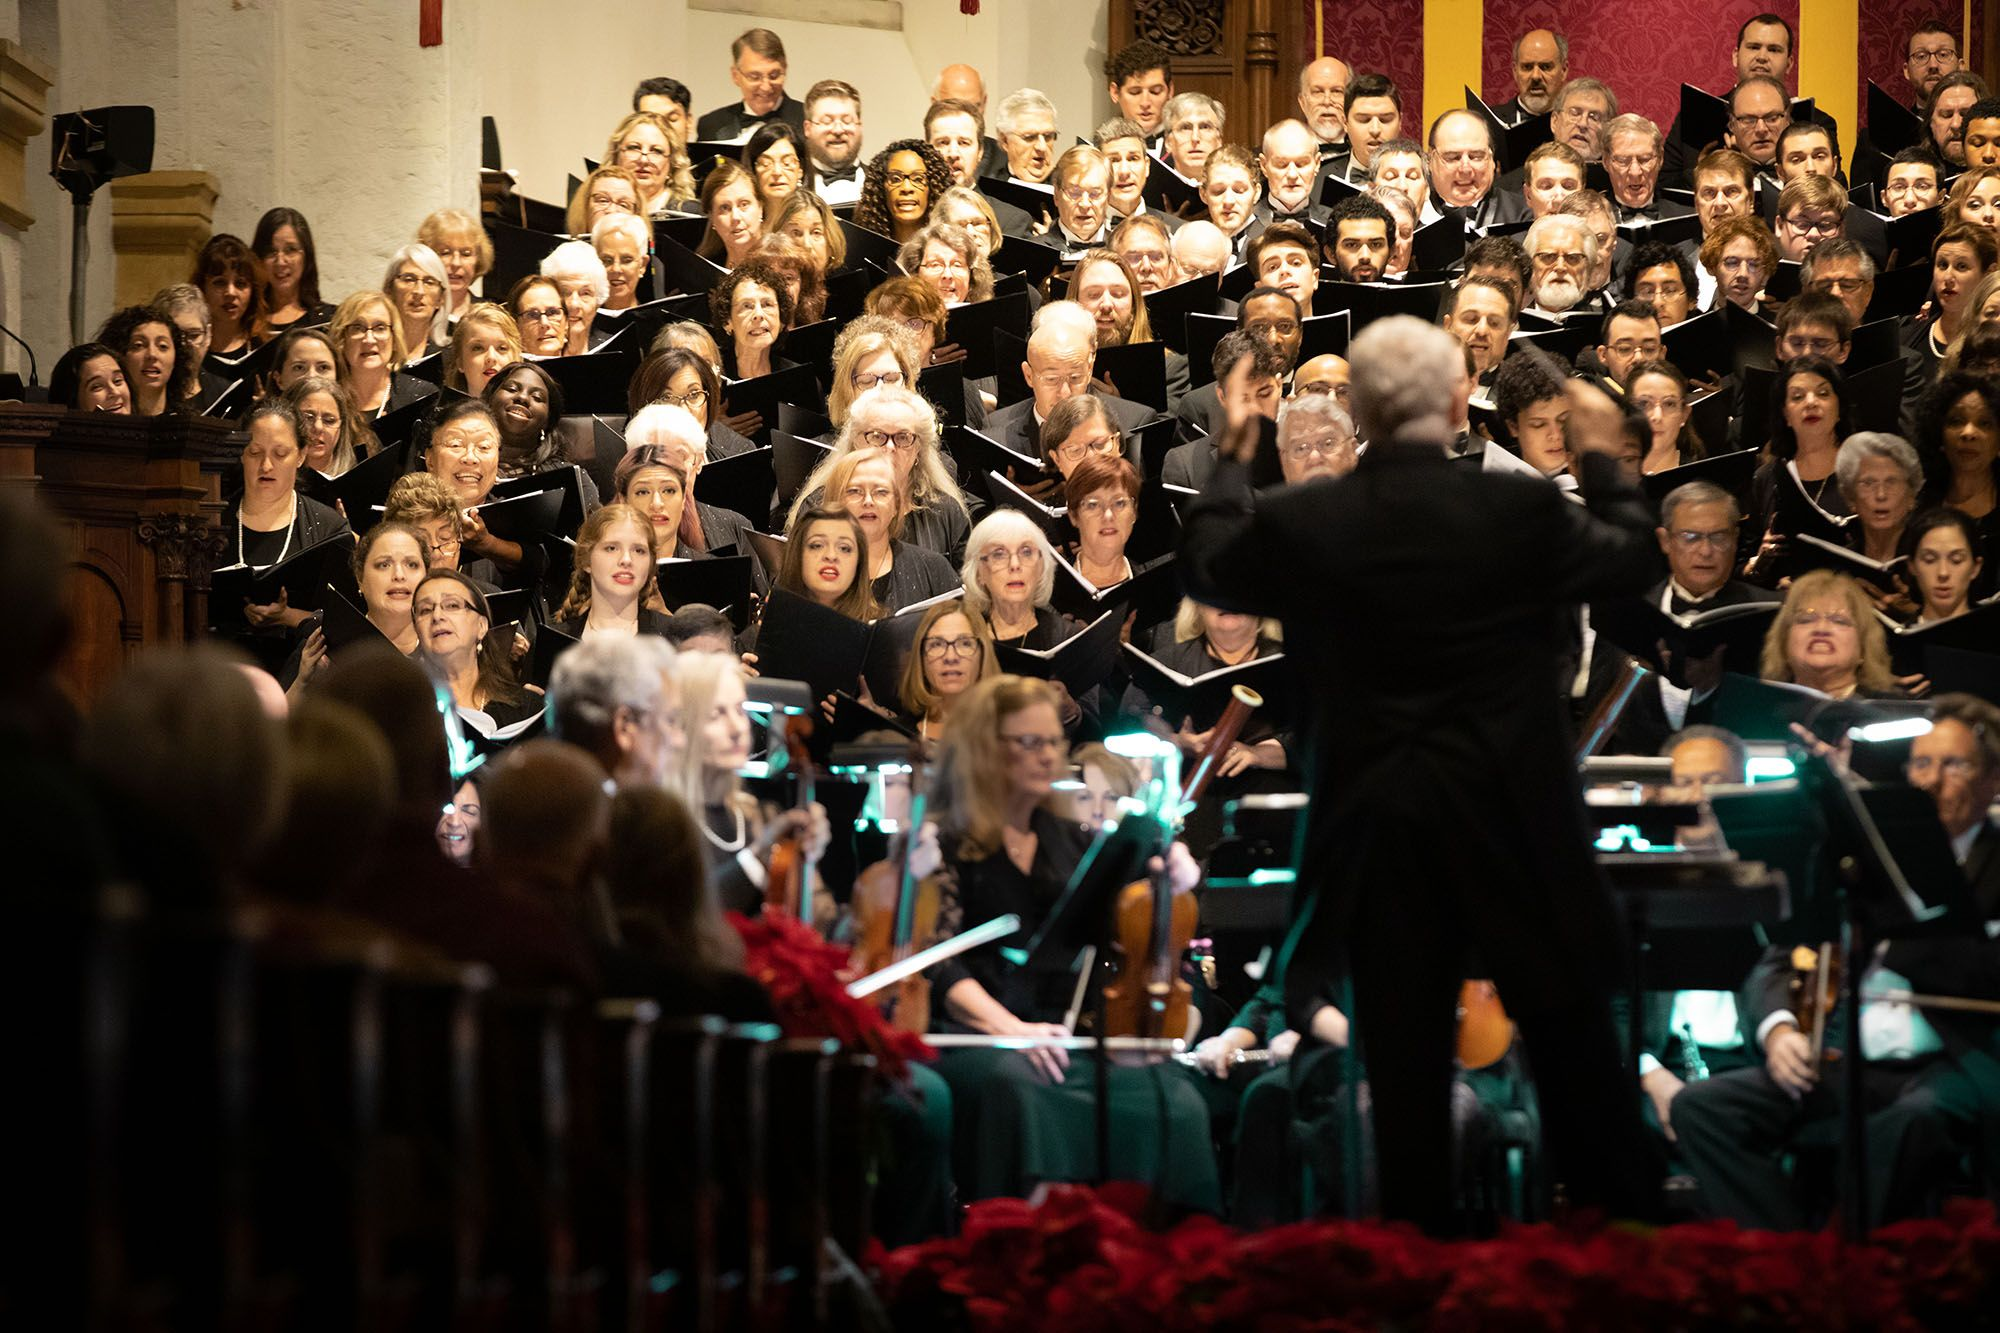 Music professor John Sinclair conducting the Bach Festival Choir holiday concert, which aired on PBS.